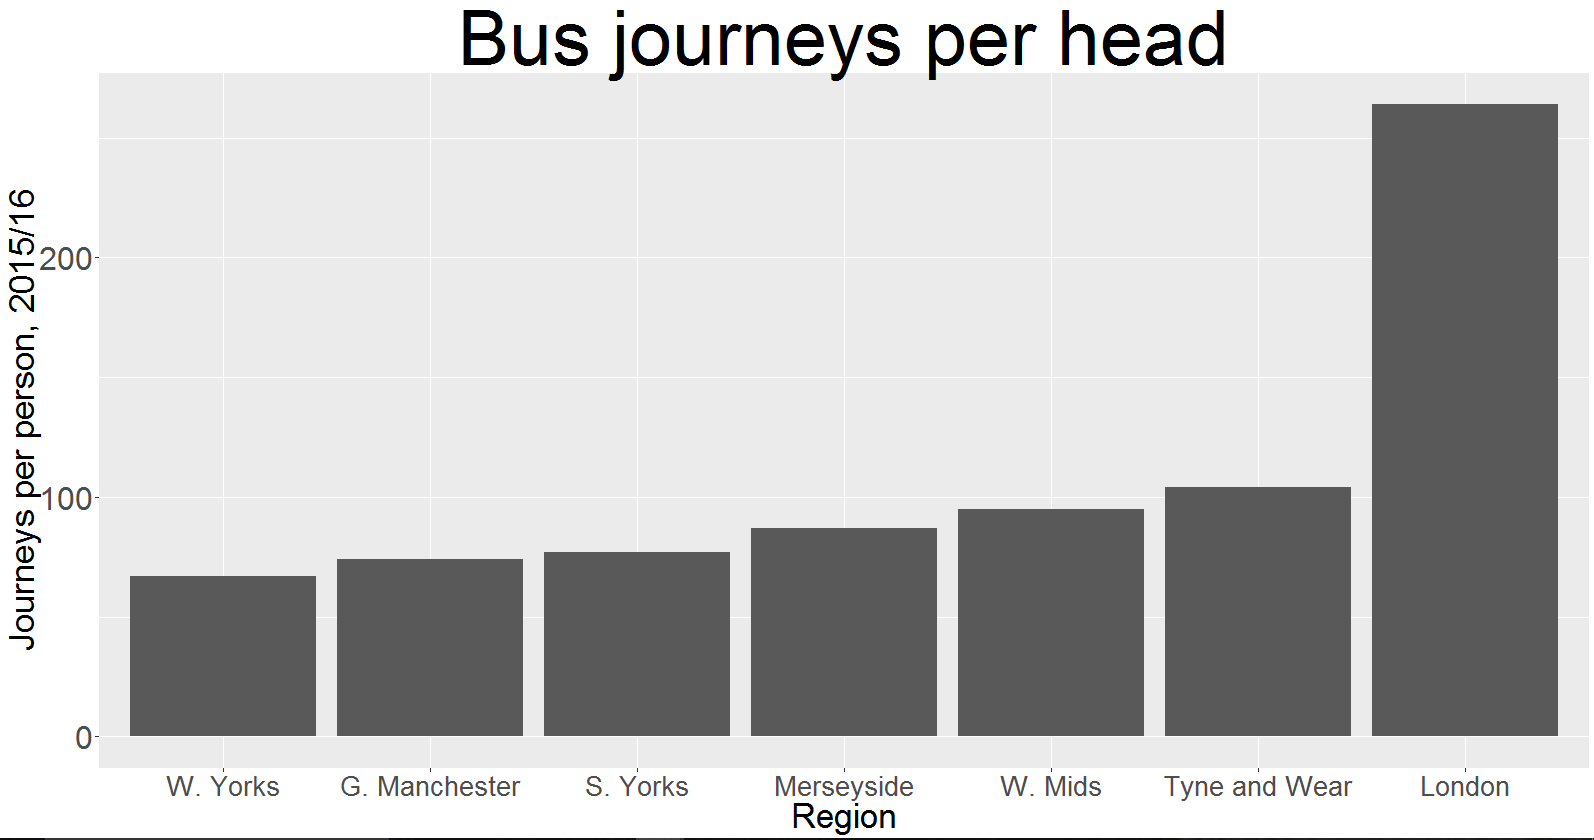 Londoners Take the Bus Far More Often Than the Rest of England (Adjusted for Population)